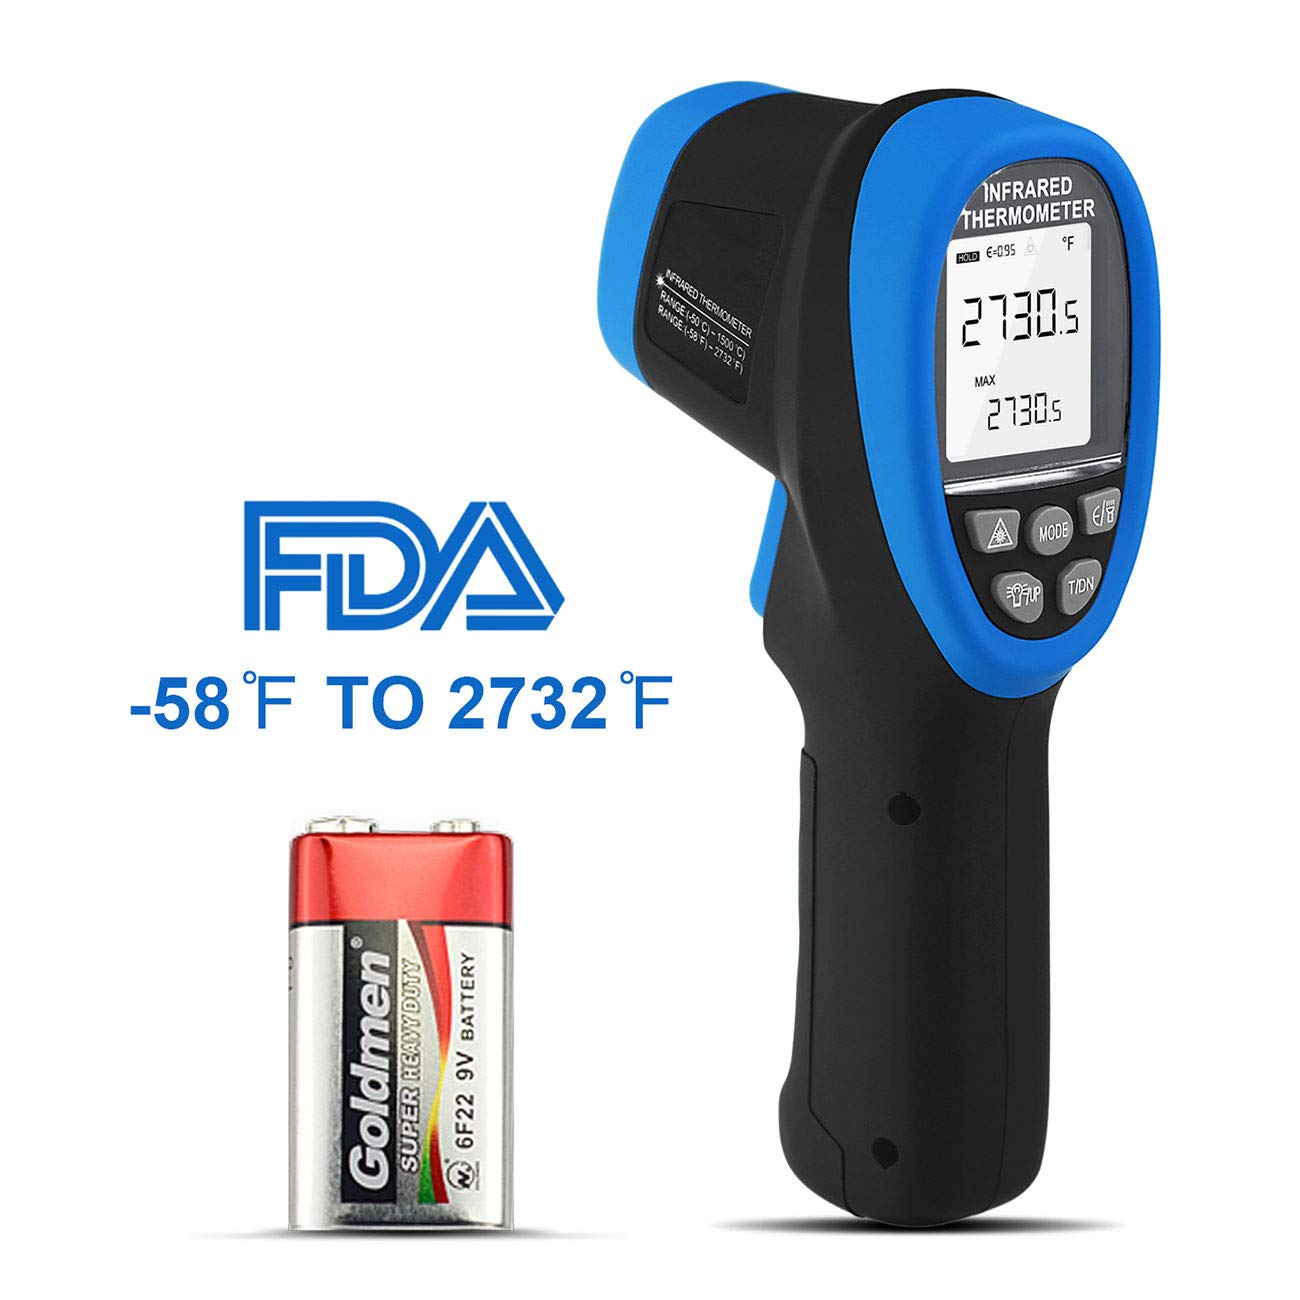 Infrared Thermometer, BT-1500 Non-Contact Digital Double Laser Pointers High Temp Pyrometer, 30:1 IR Temperature Gun -58℉ - 2732℉ (-50℃ to 1500℃) with Flashlight FDA for Kiln Forge Foundry Casting